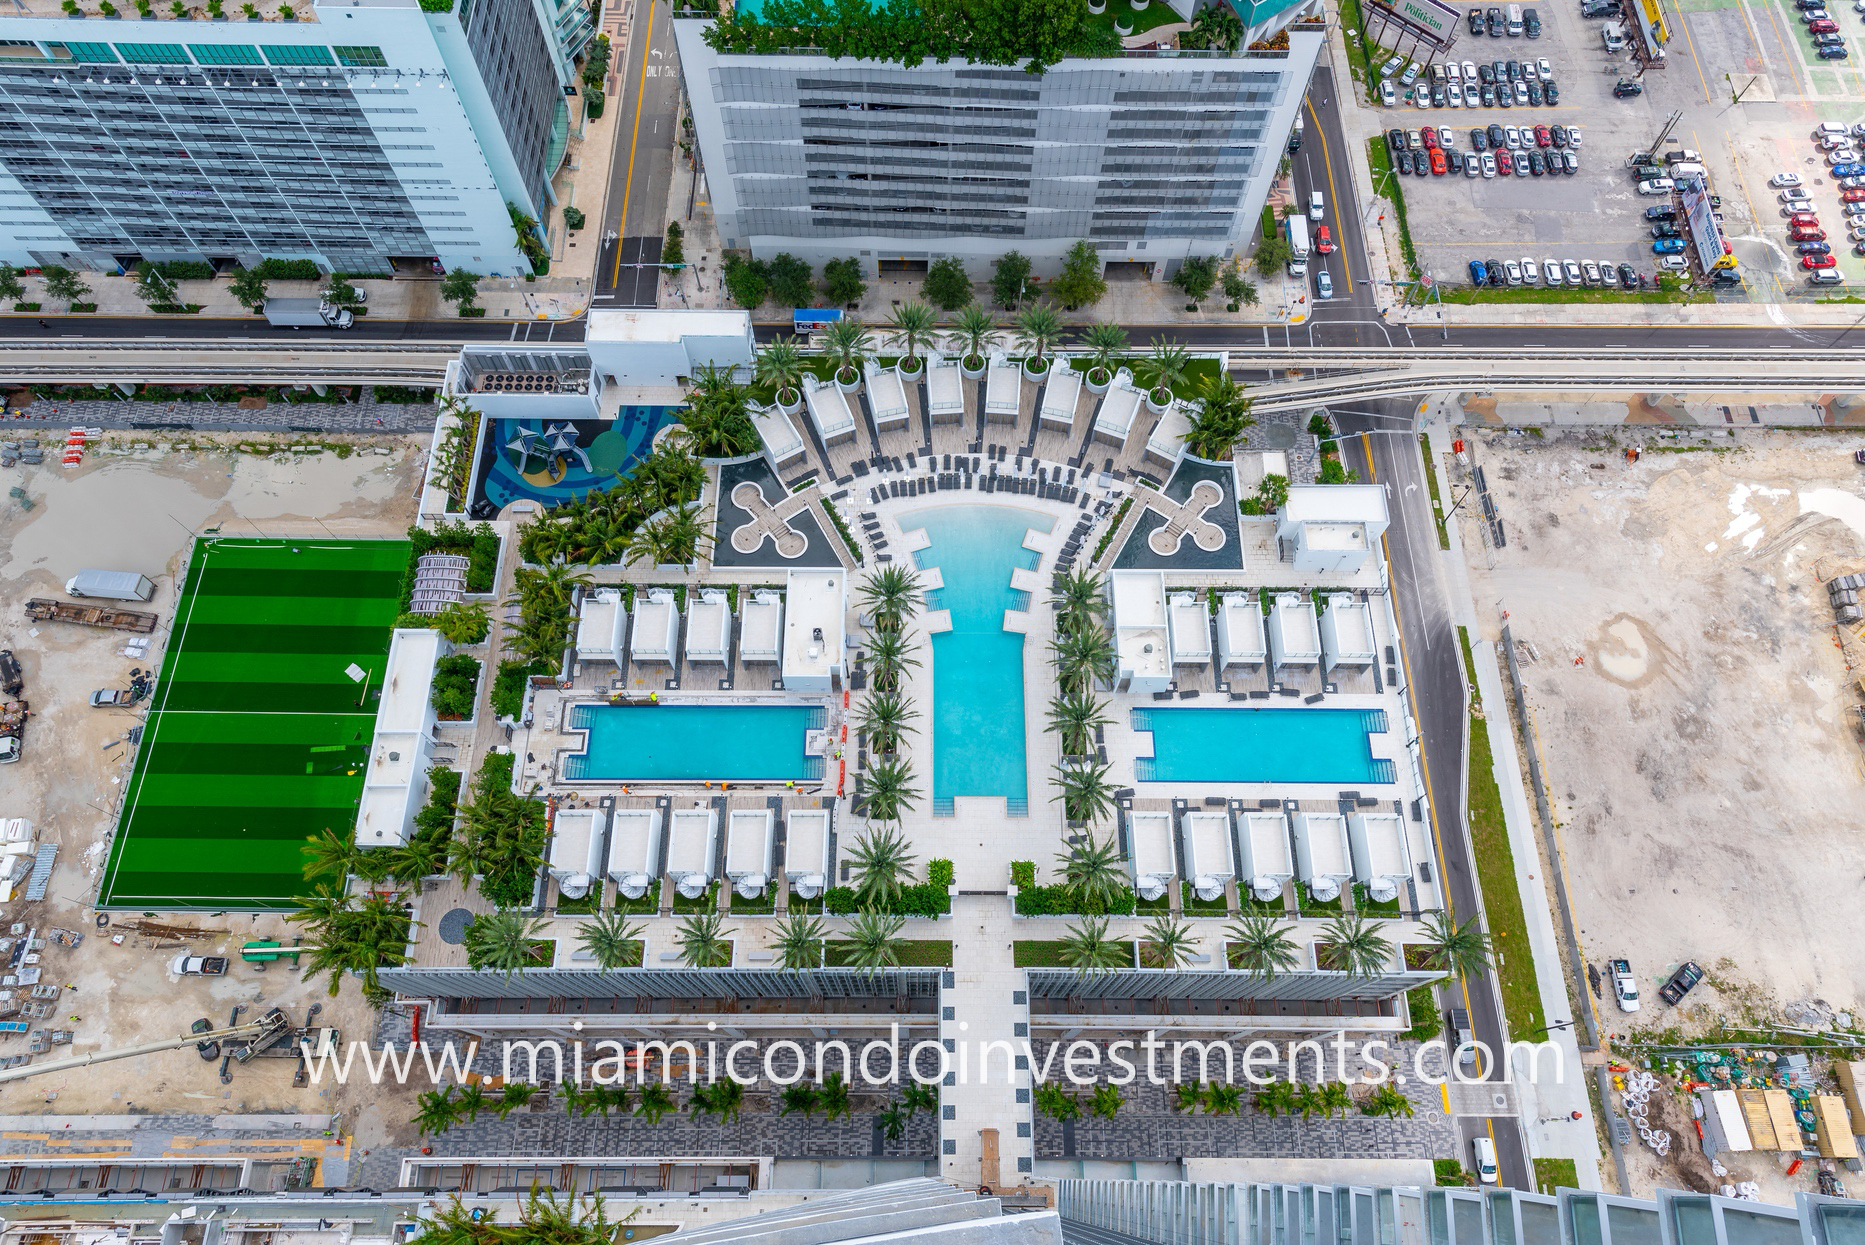 Paramount Miami resort-style pool deck from above